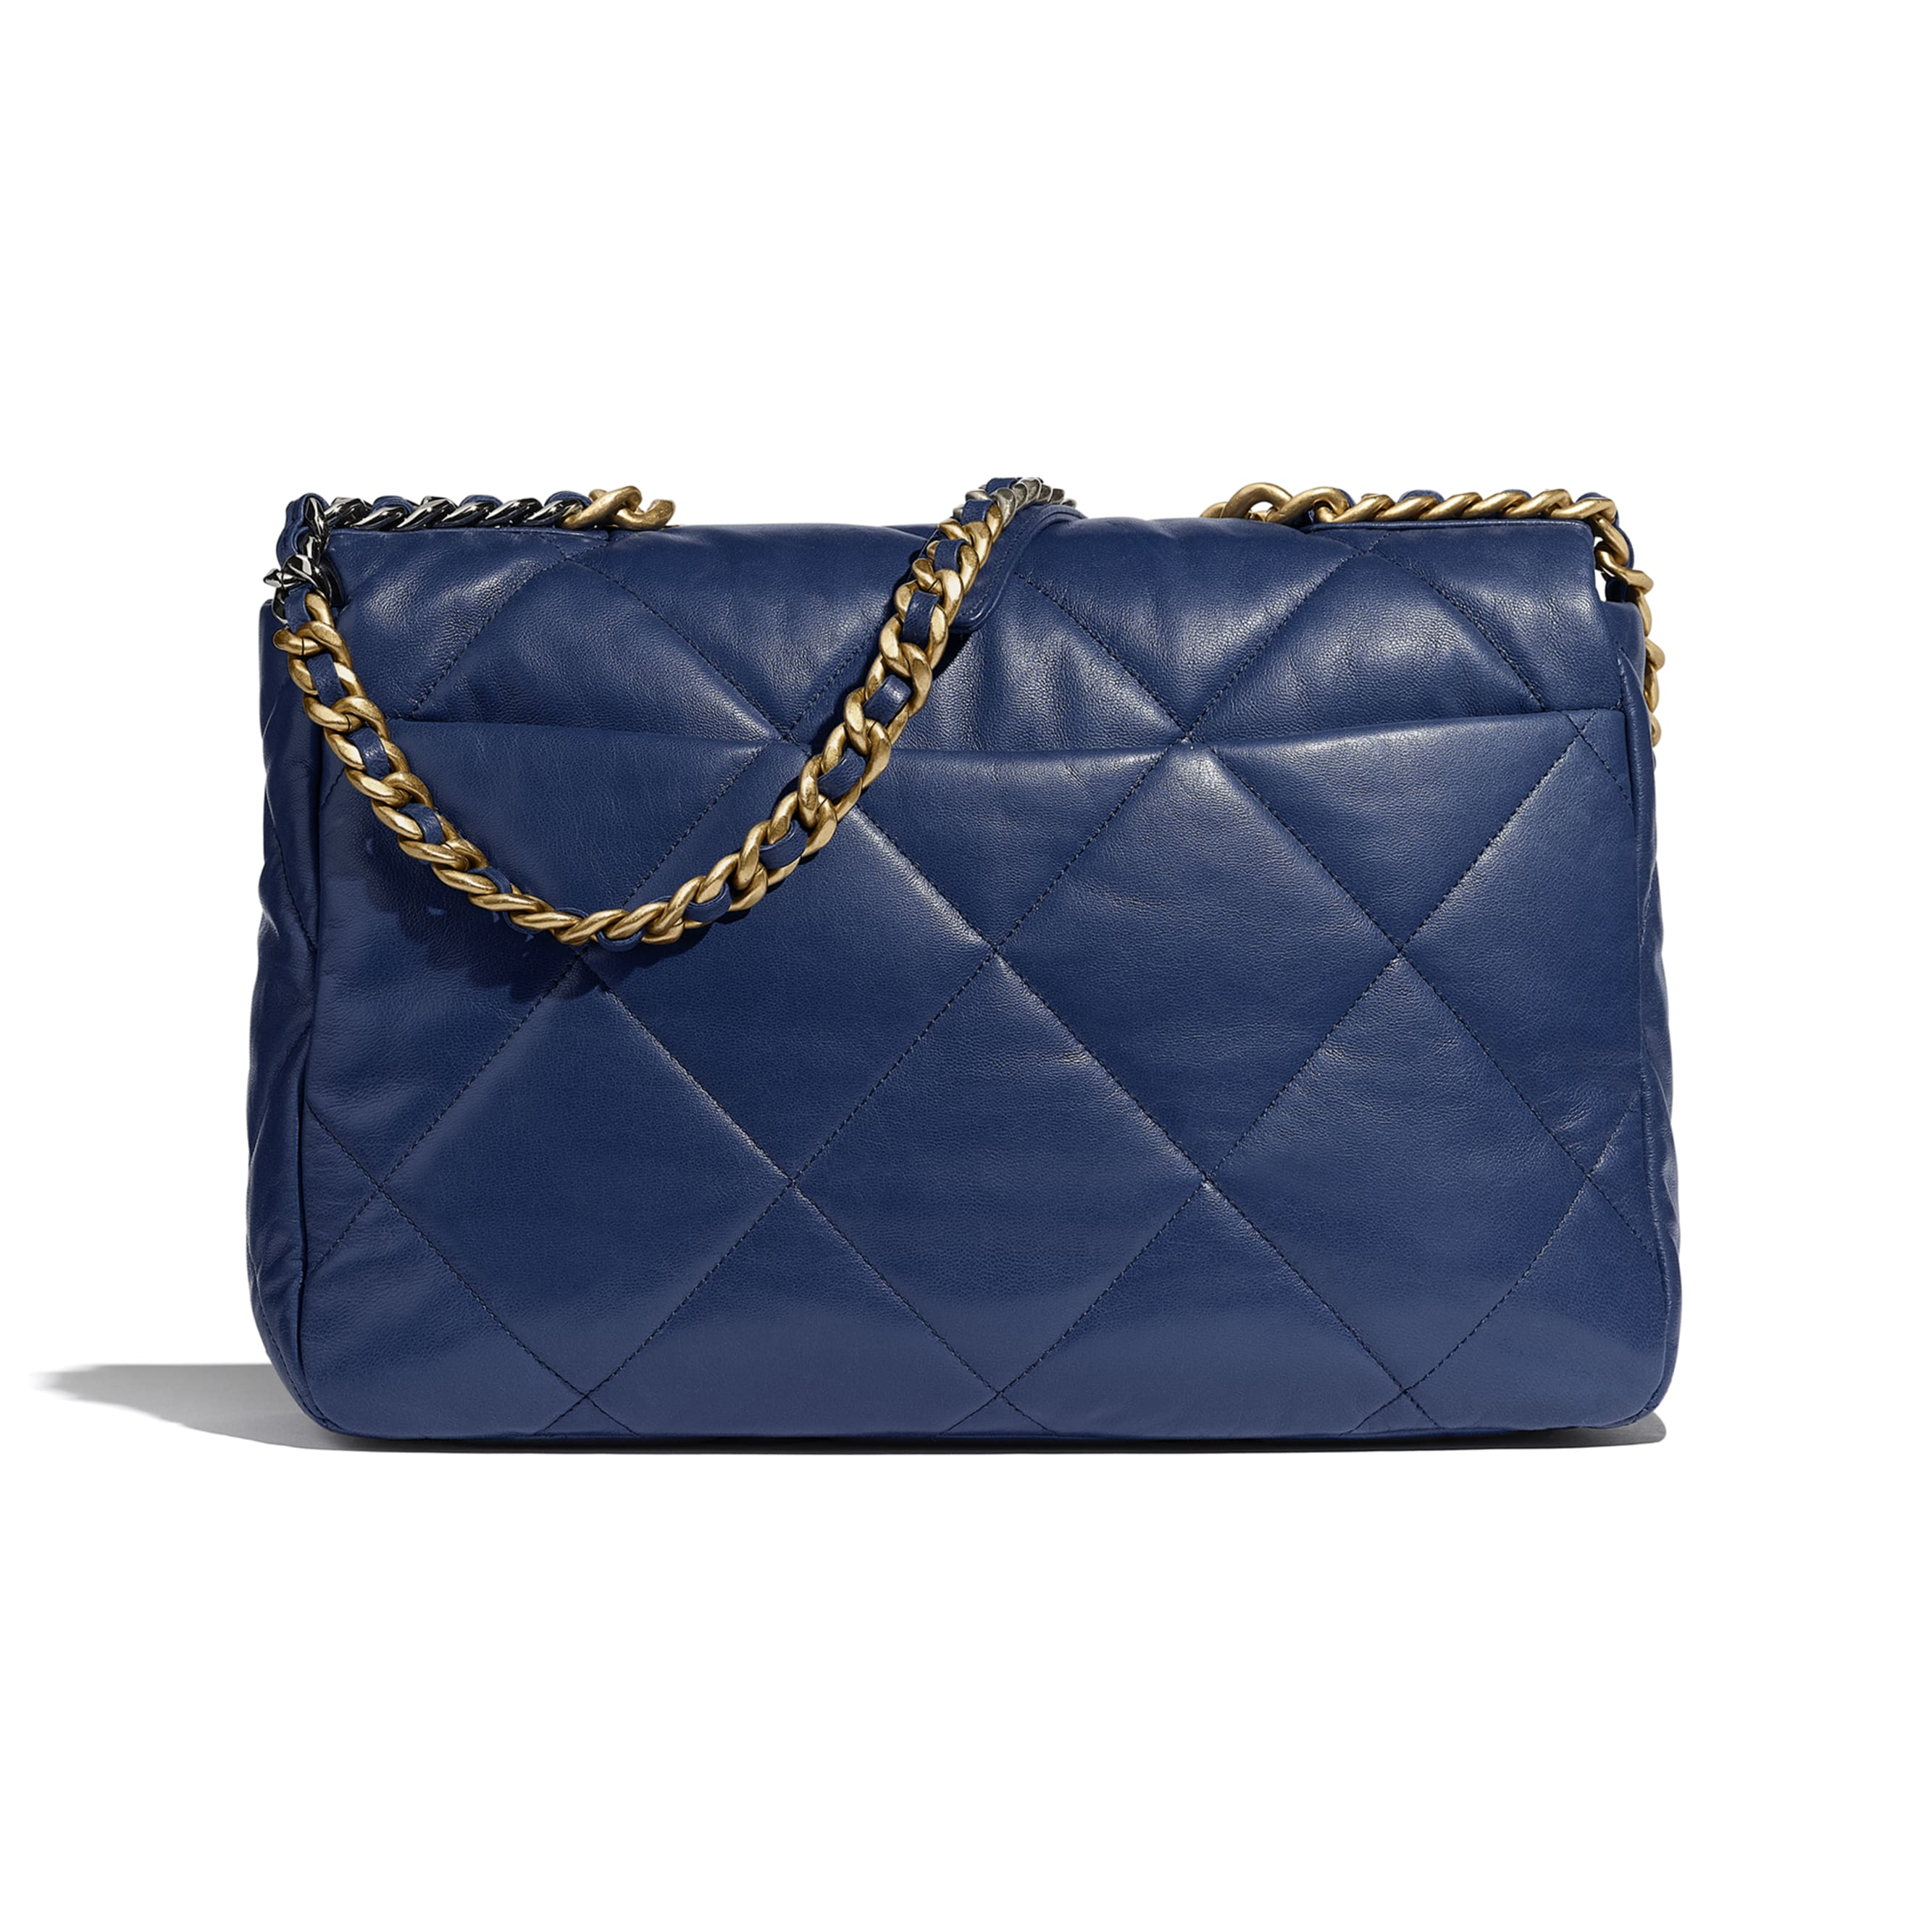 CHANEL 19 Maxi Flap Bag - Dark Blue - Goatskin, Gold-Tone, Silver-Tone & Ruthenium-Finish Metal - CHANEL - Alternative view - see standard sized version